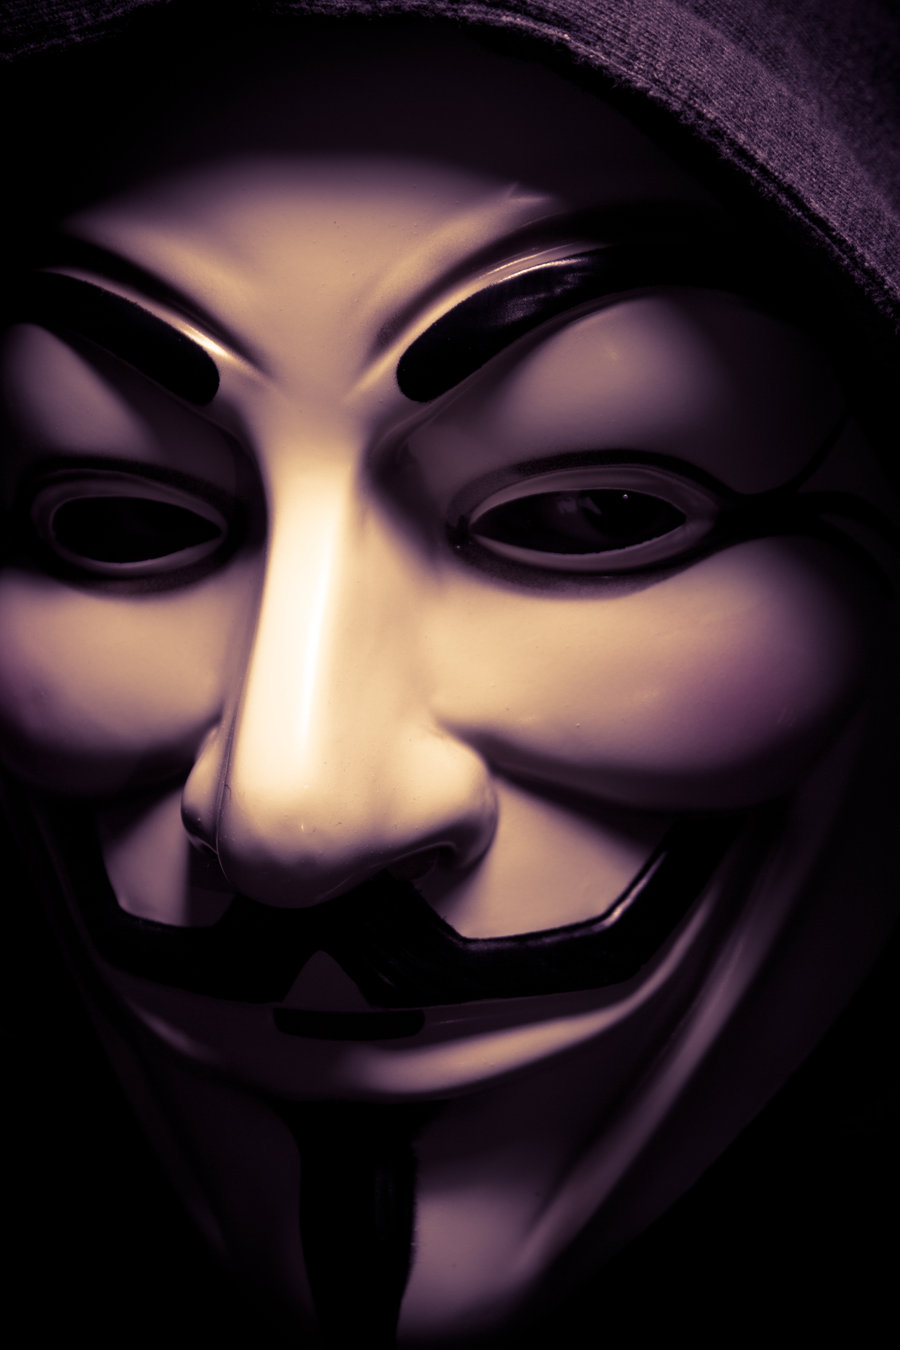 me__in_a_guy_fawkes_mask_by_esseti-d4f2lt9.jpg